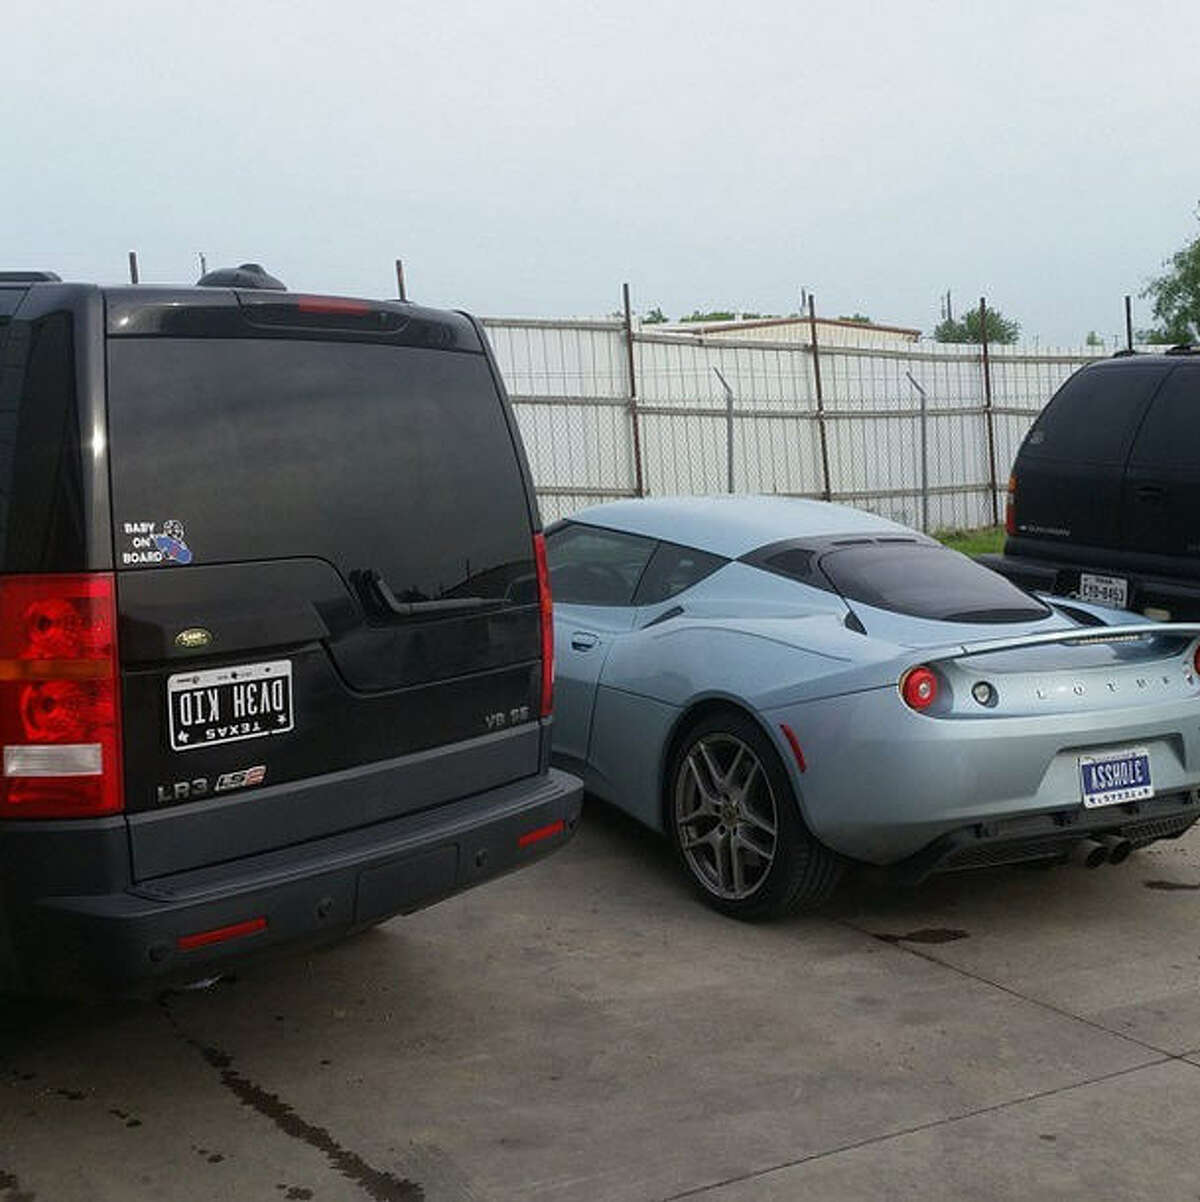 """Side by side shots of the """"DV3H KID"""" and """"37OHSSA"""" vanity plates."""